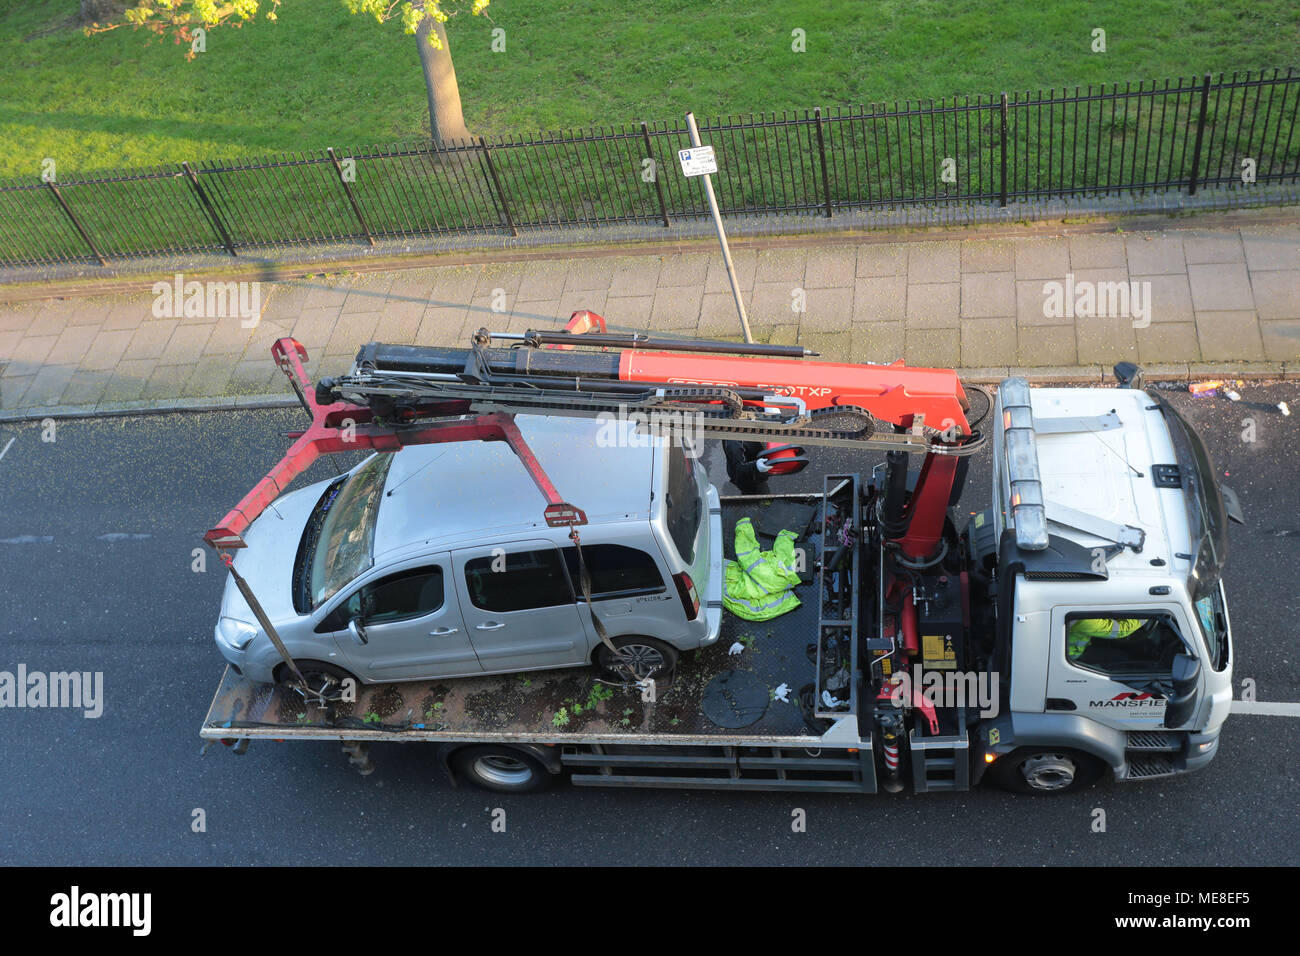 Tow Truck Uk Stock Photos & Tow Truck Uk Stock Images - Alamy